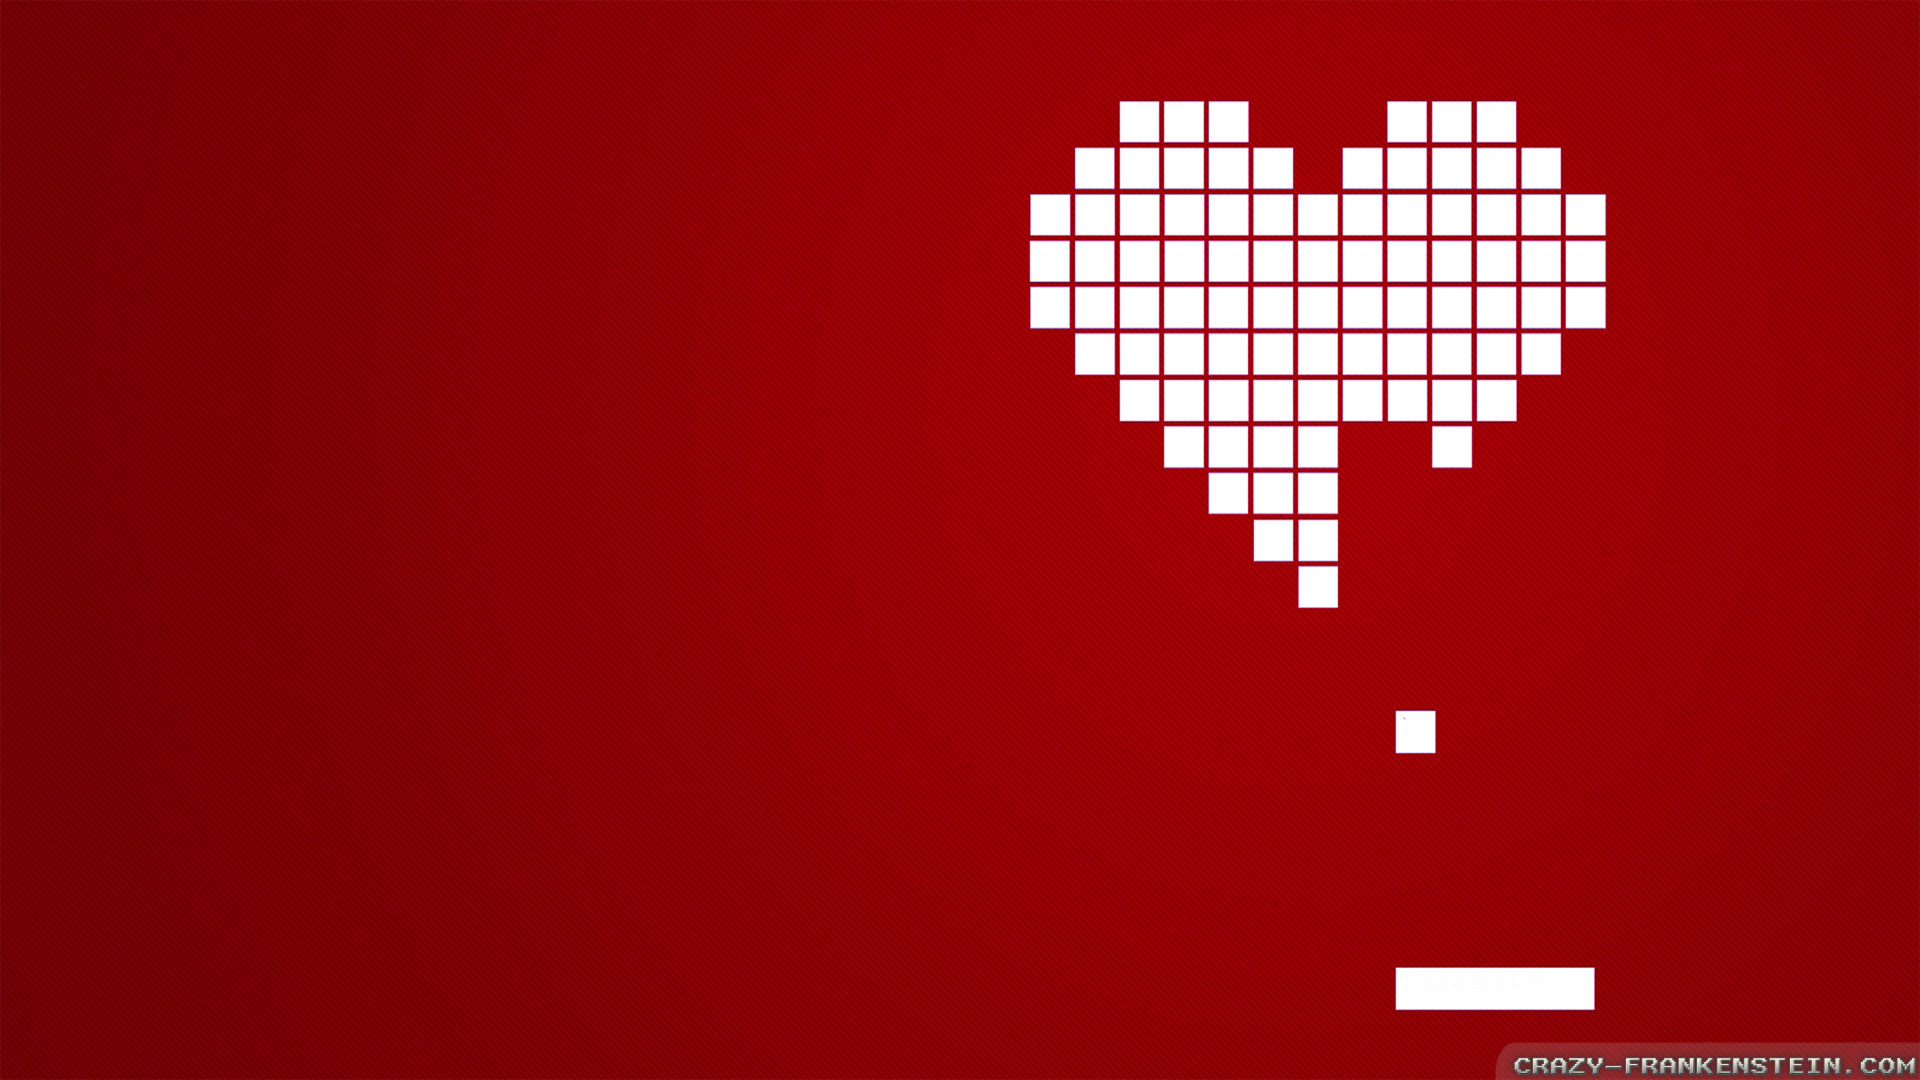 True Love Hd Wallpapers With Quotes Love Games Wallpapers Crazy Frankenstein